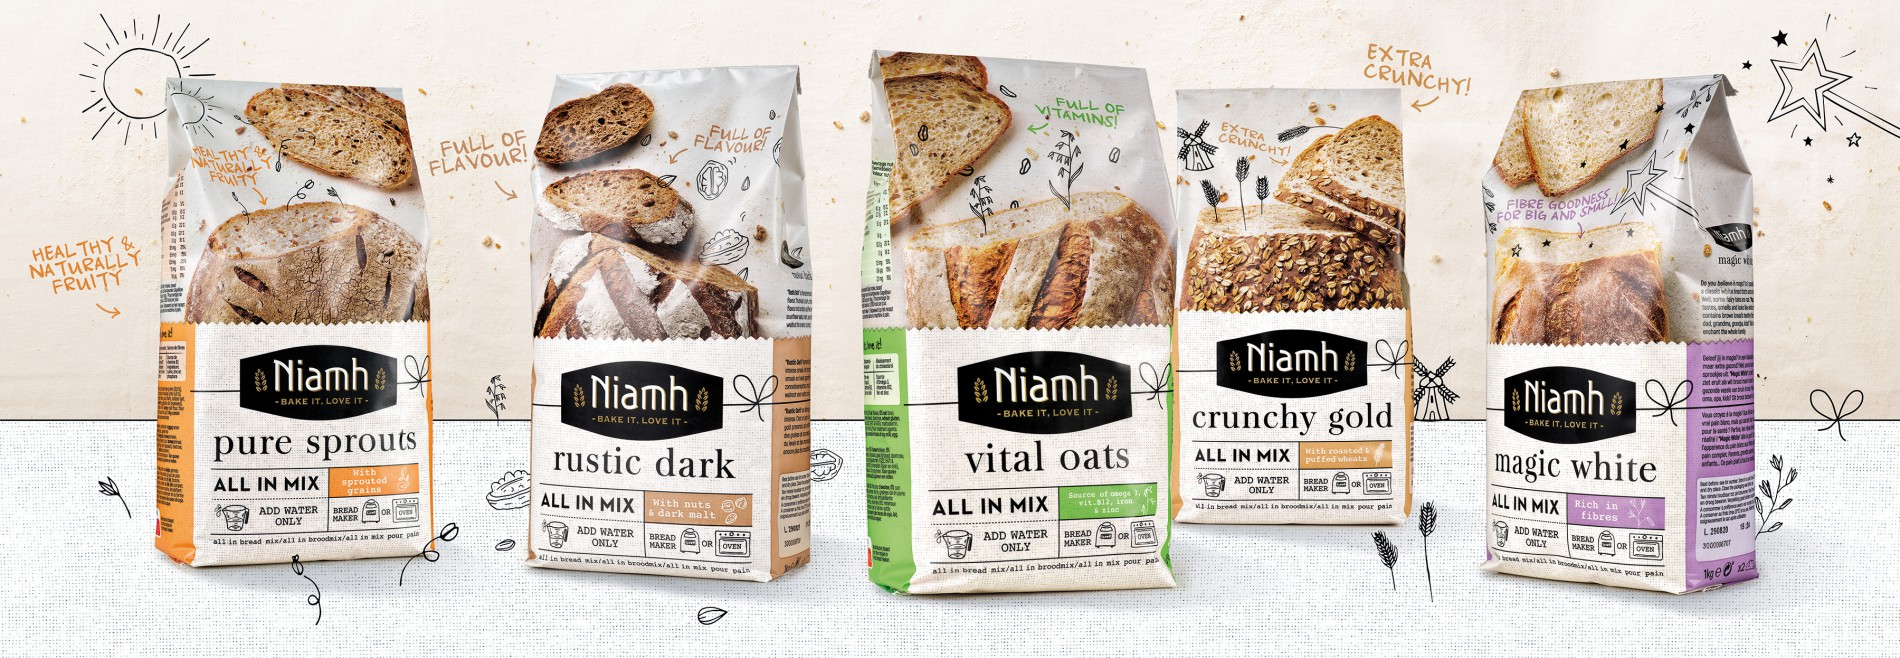 Quatre Mains package design - Package design niamh, quatre mains